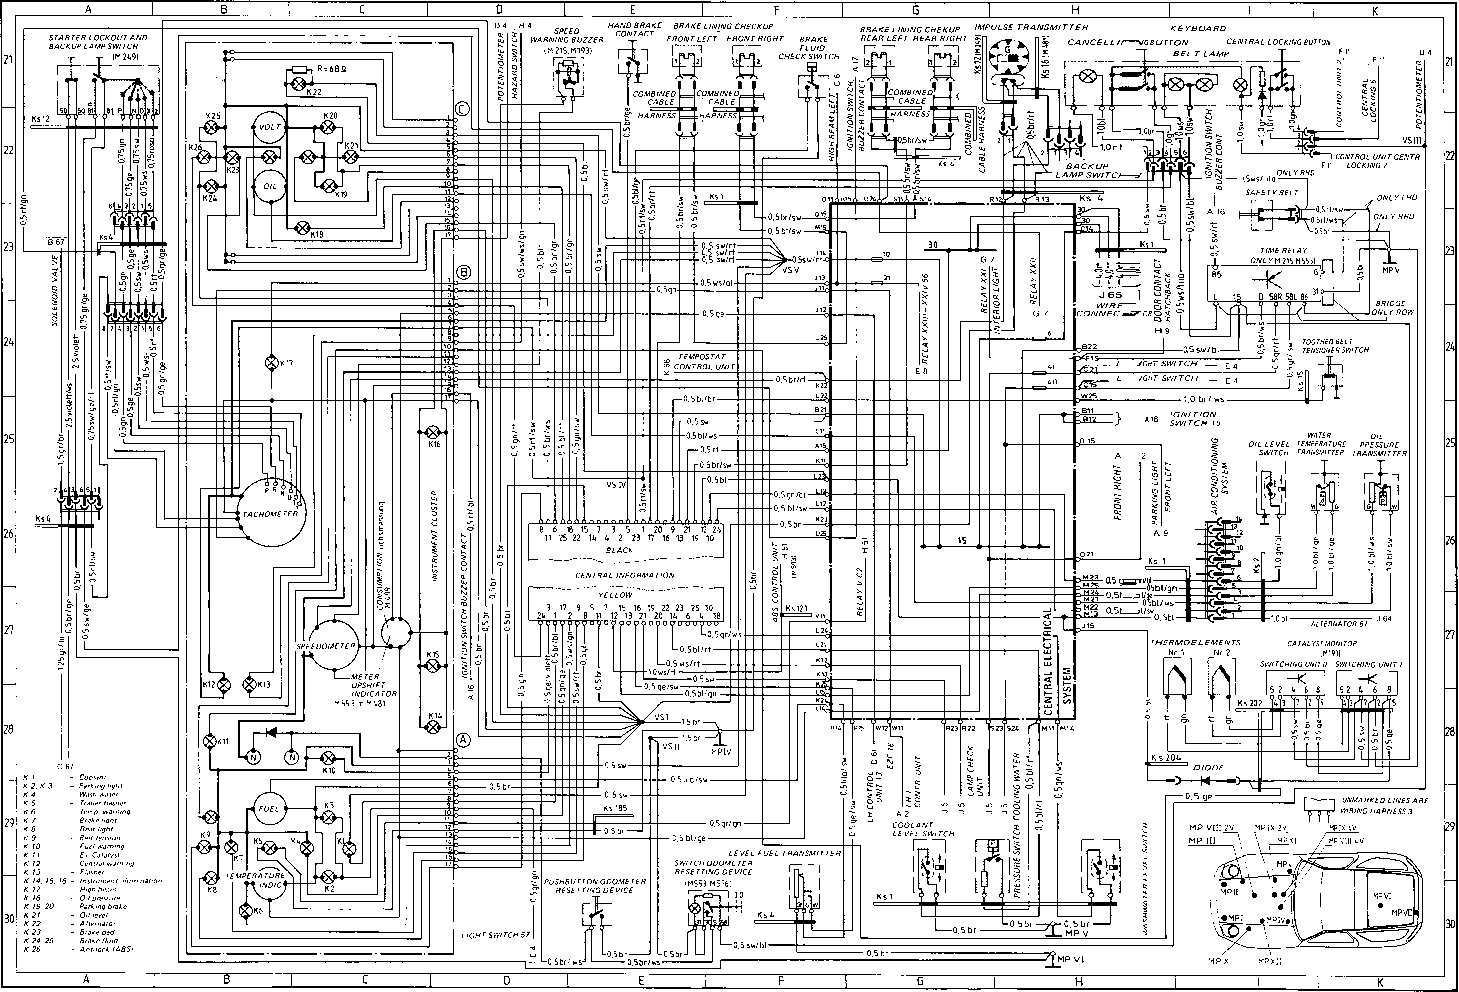 Wiring Diagram Type 928 S Model 86 Page 3 on battery wiring diagram